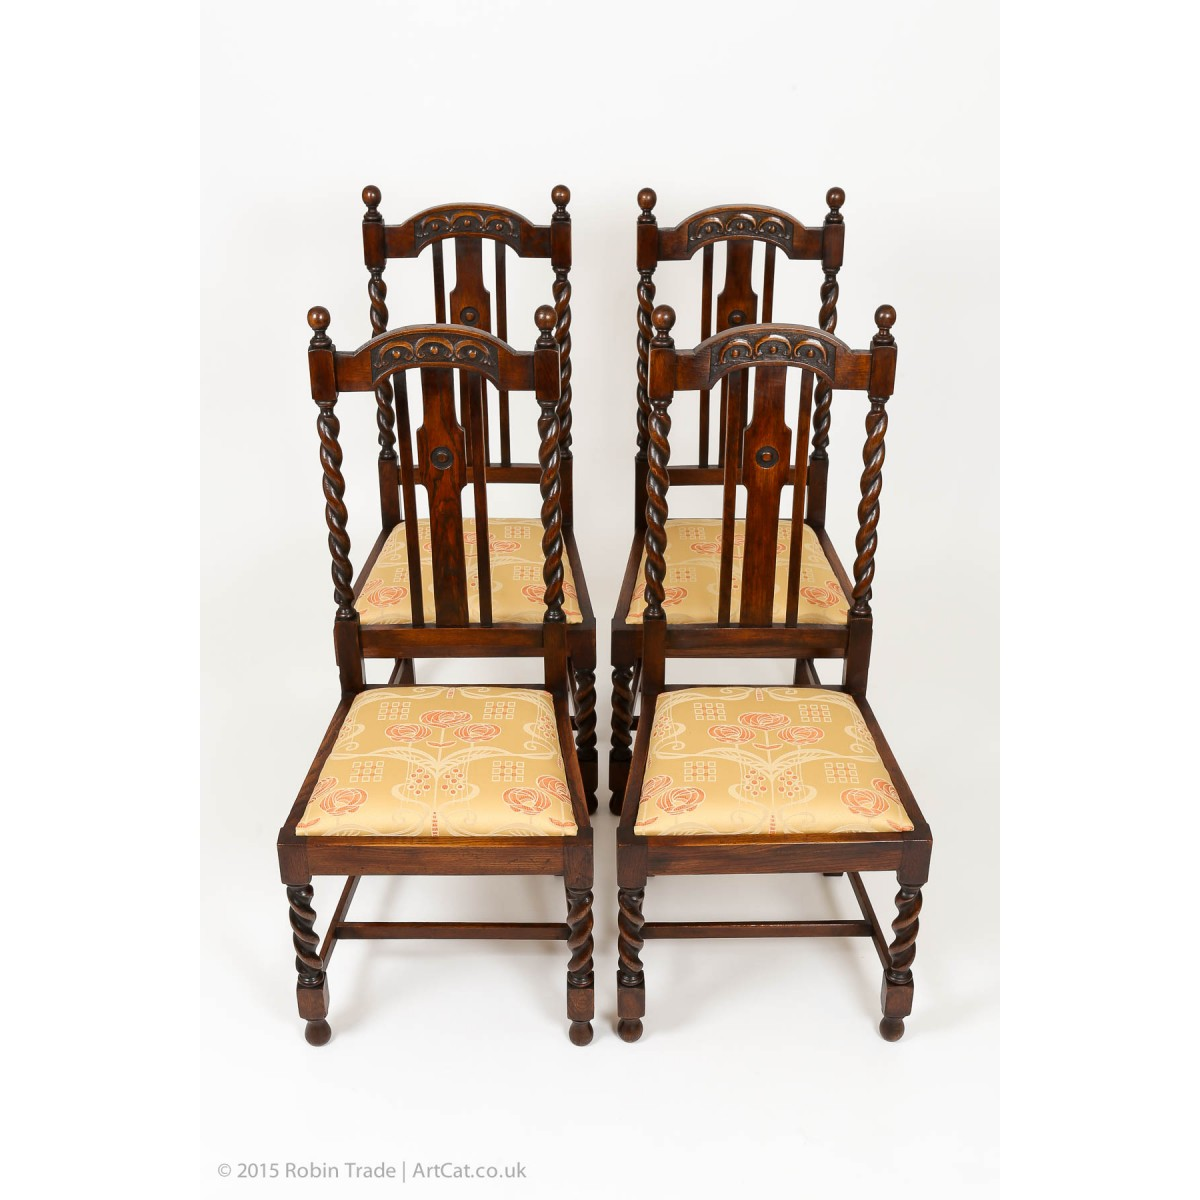 Perfect Four Oak Barley Twist Edwardian Chairs With Fine Carving